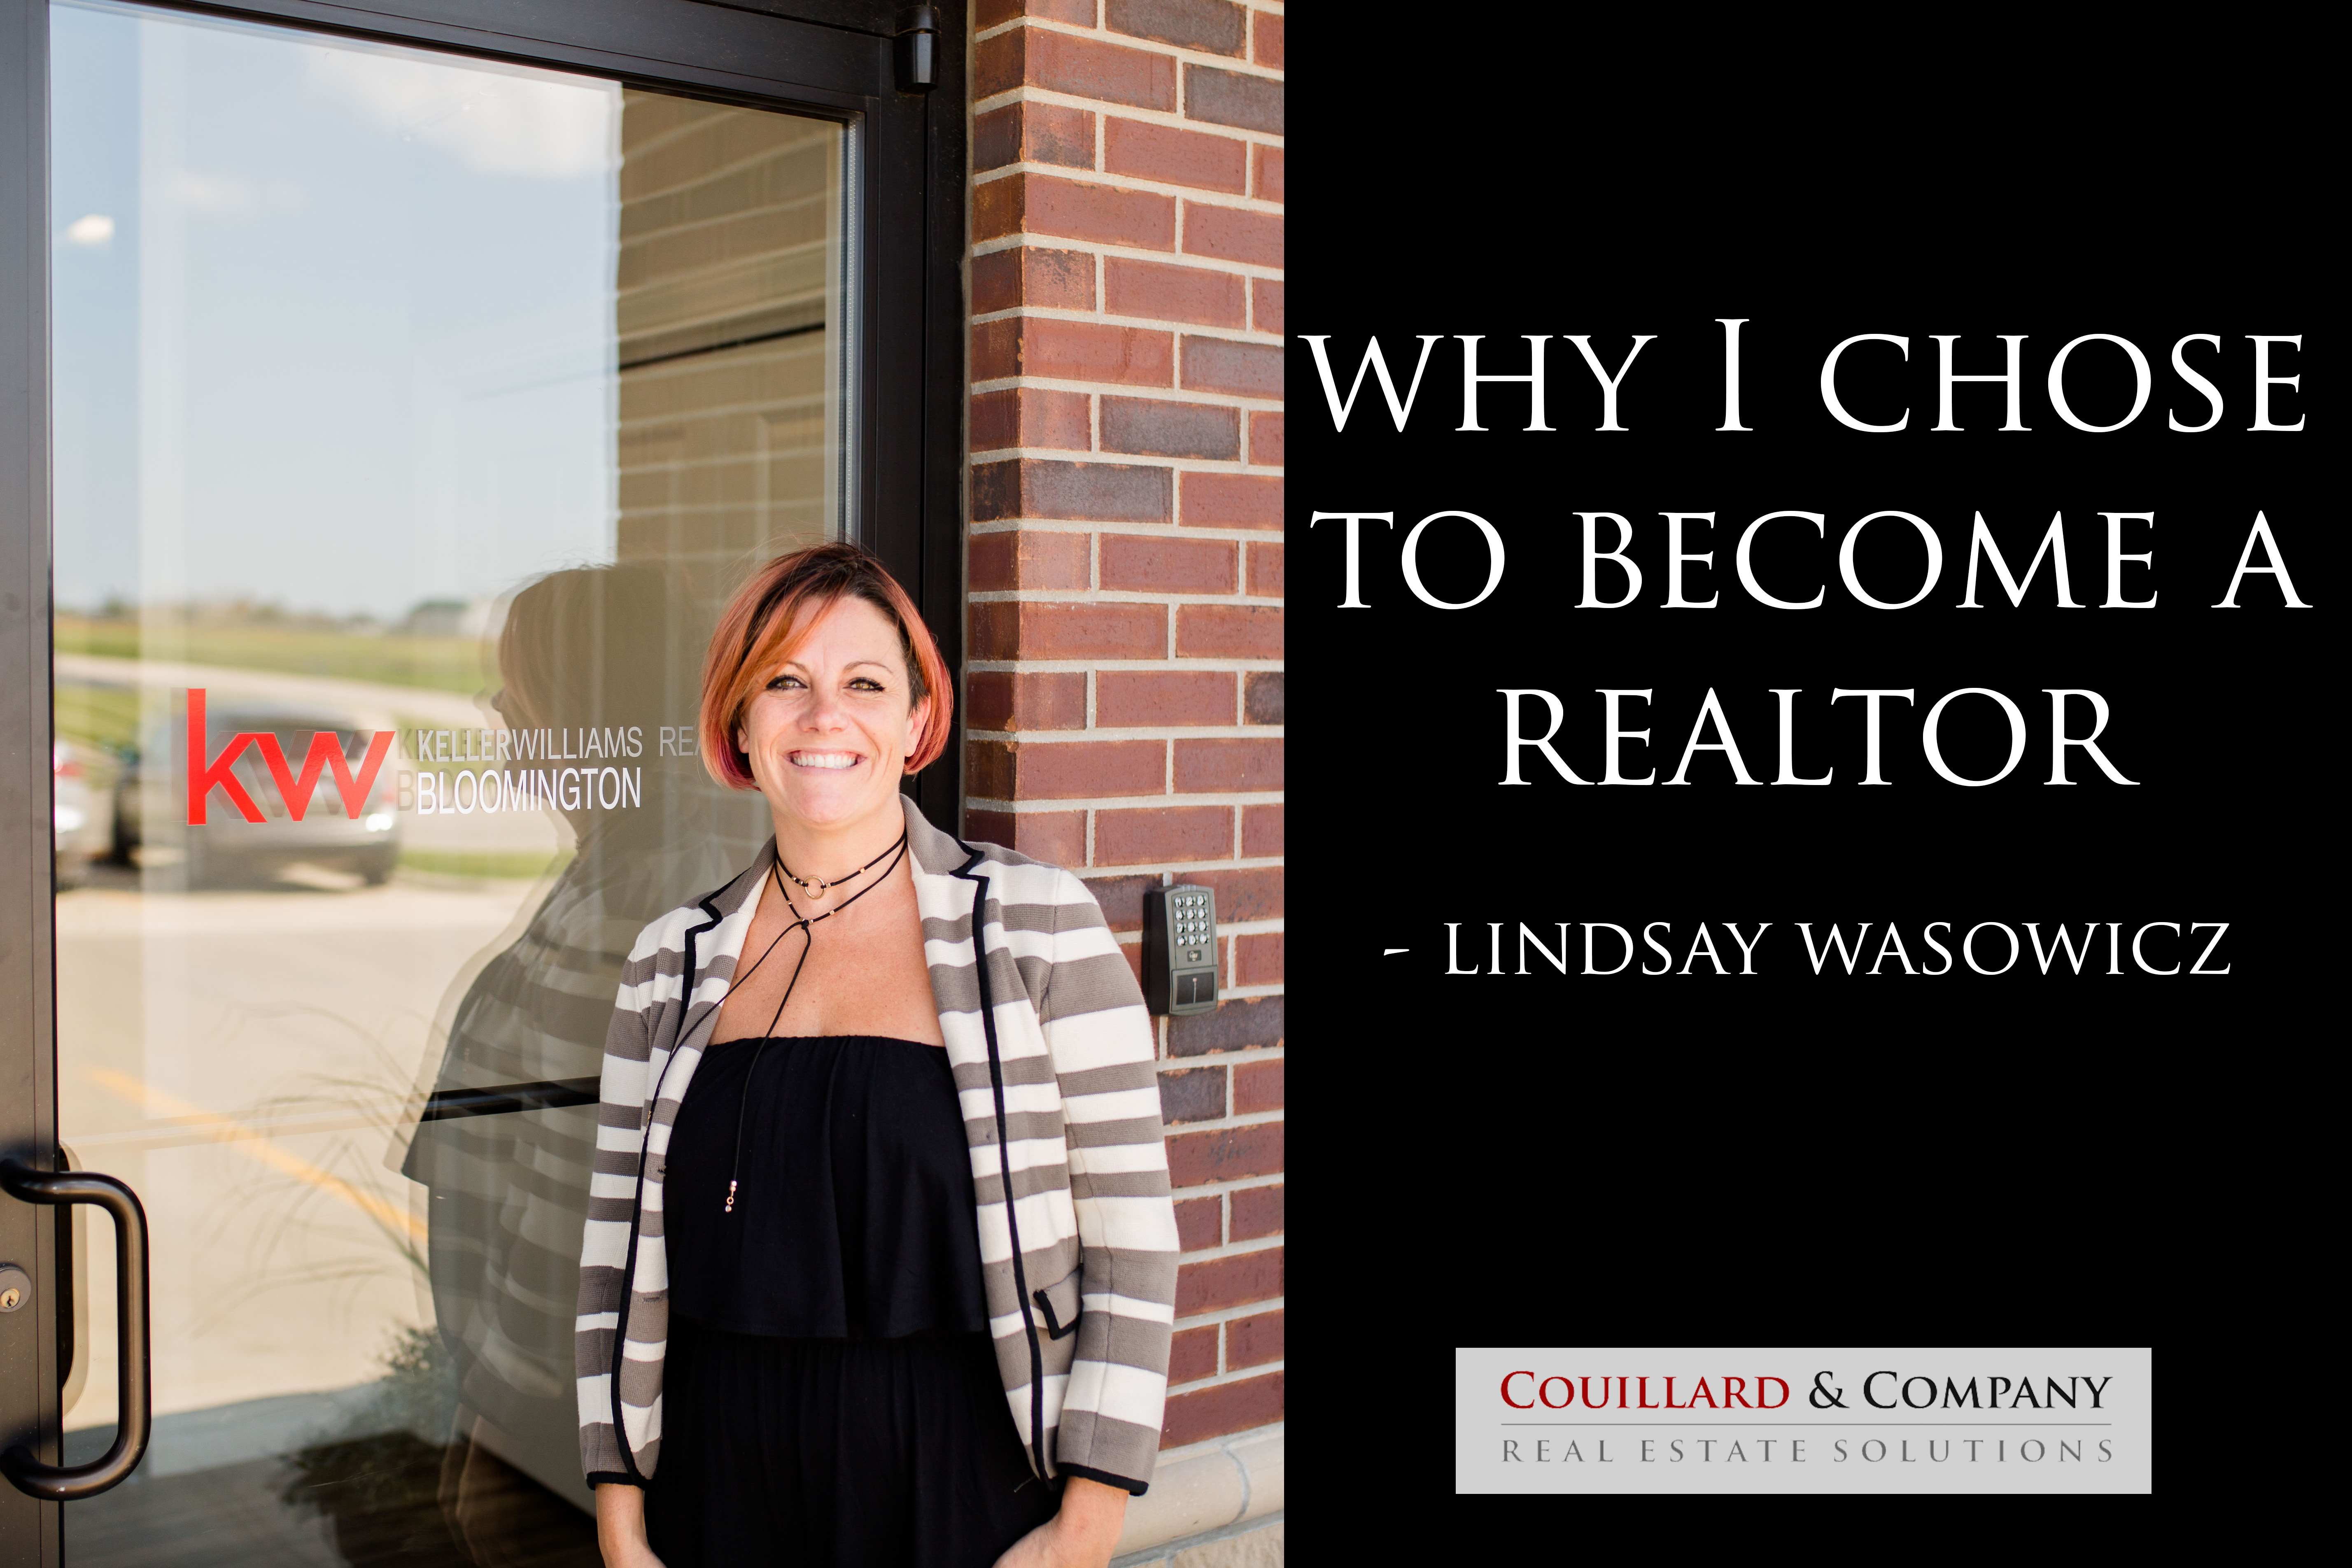 Why I Chose to Become a Realtor